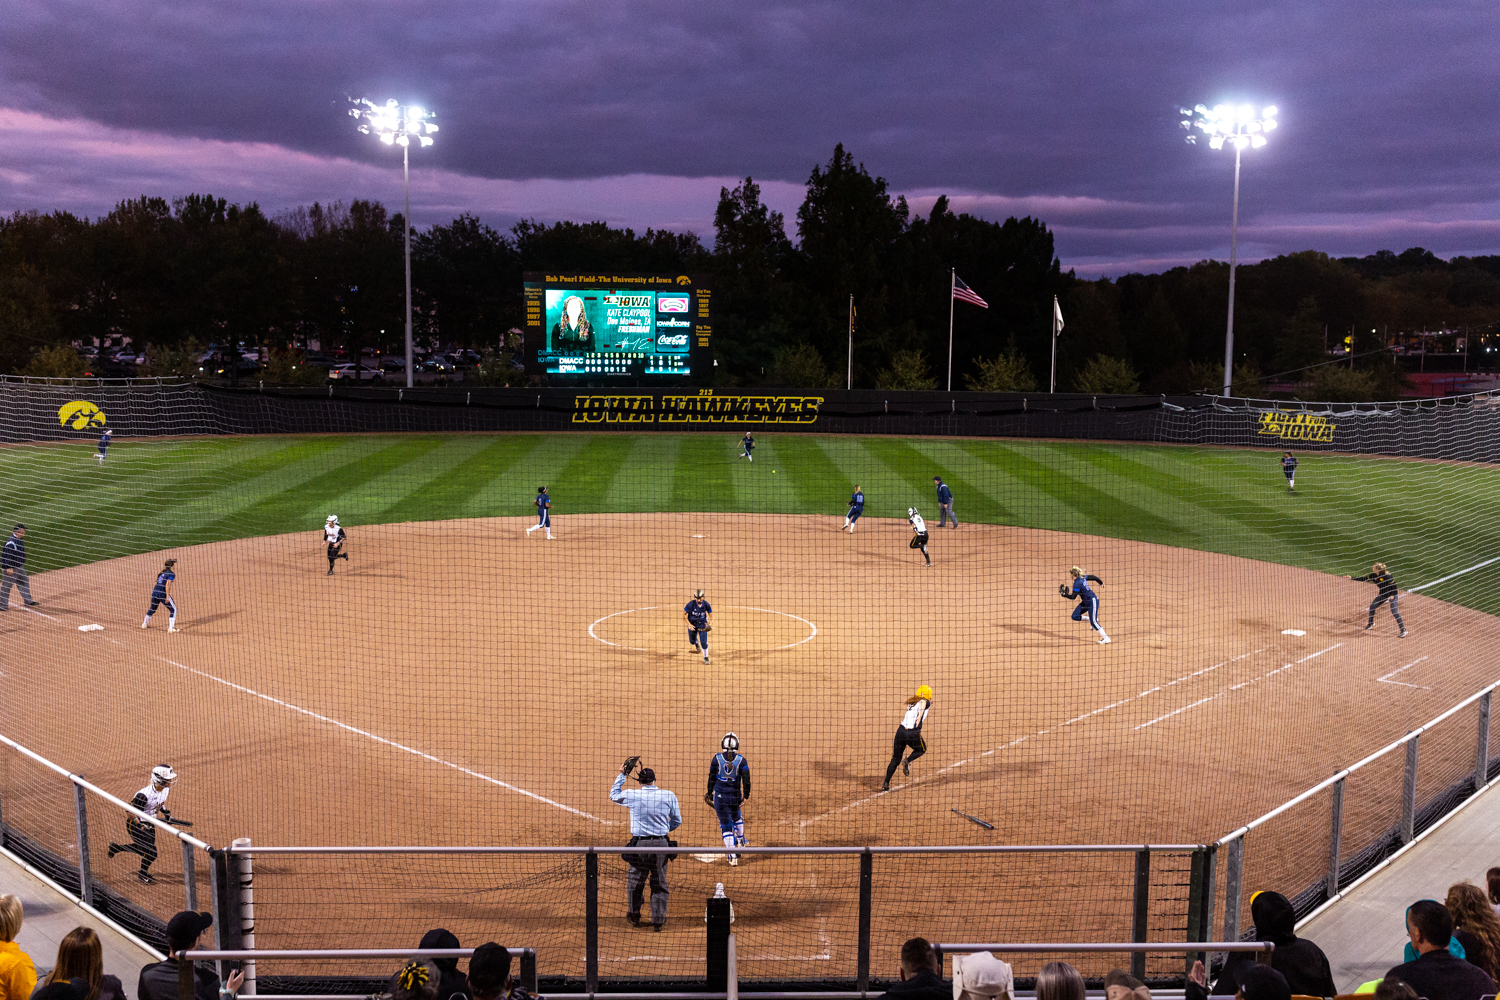 Iowa%27s+Kate+Claypool+sprints+towards+first+base+during+a+softball+game+against+Des+Moines+Area+Community+College+on+Friday%2C+Sept.+21%2C+2018.+The+Hawkeyes+defeated+the+Bears%2C+8-1.